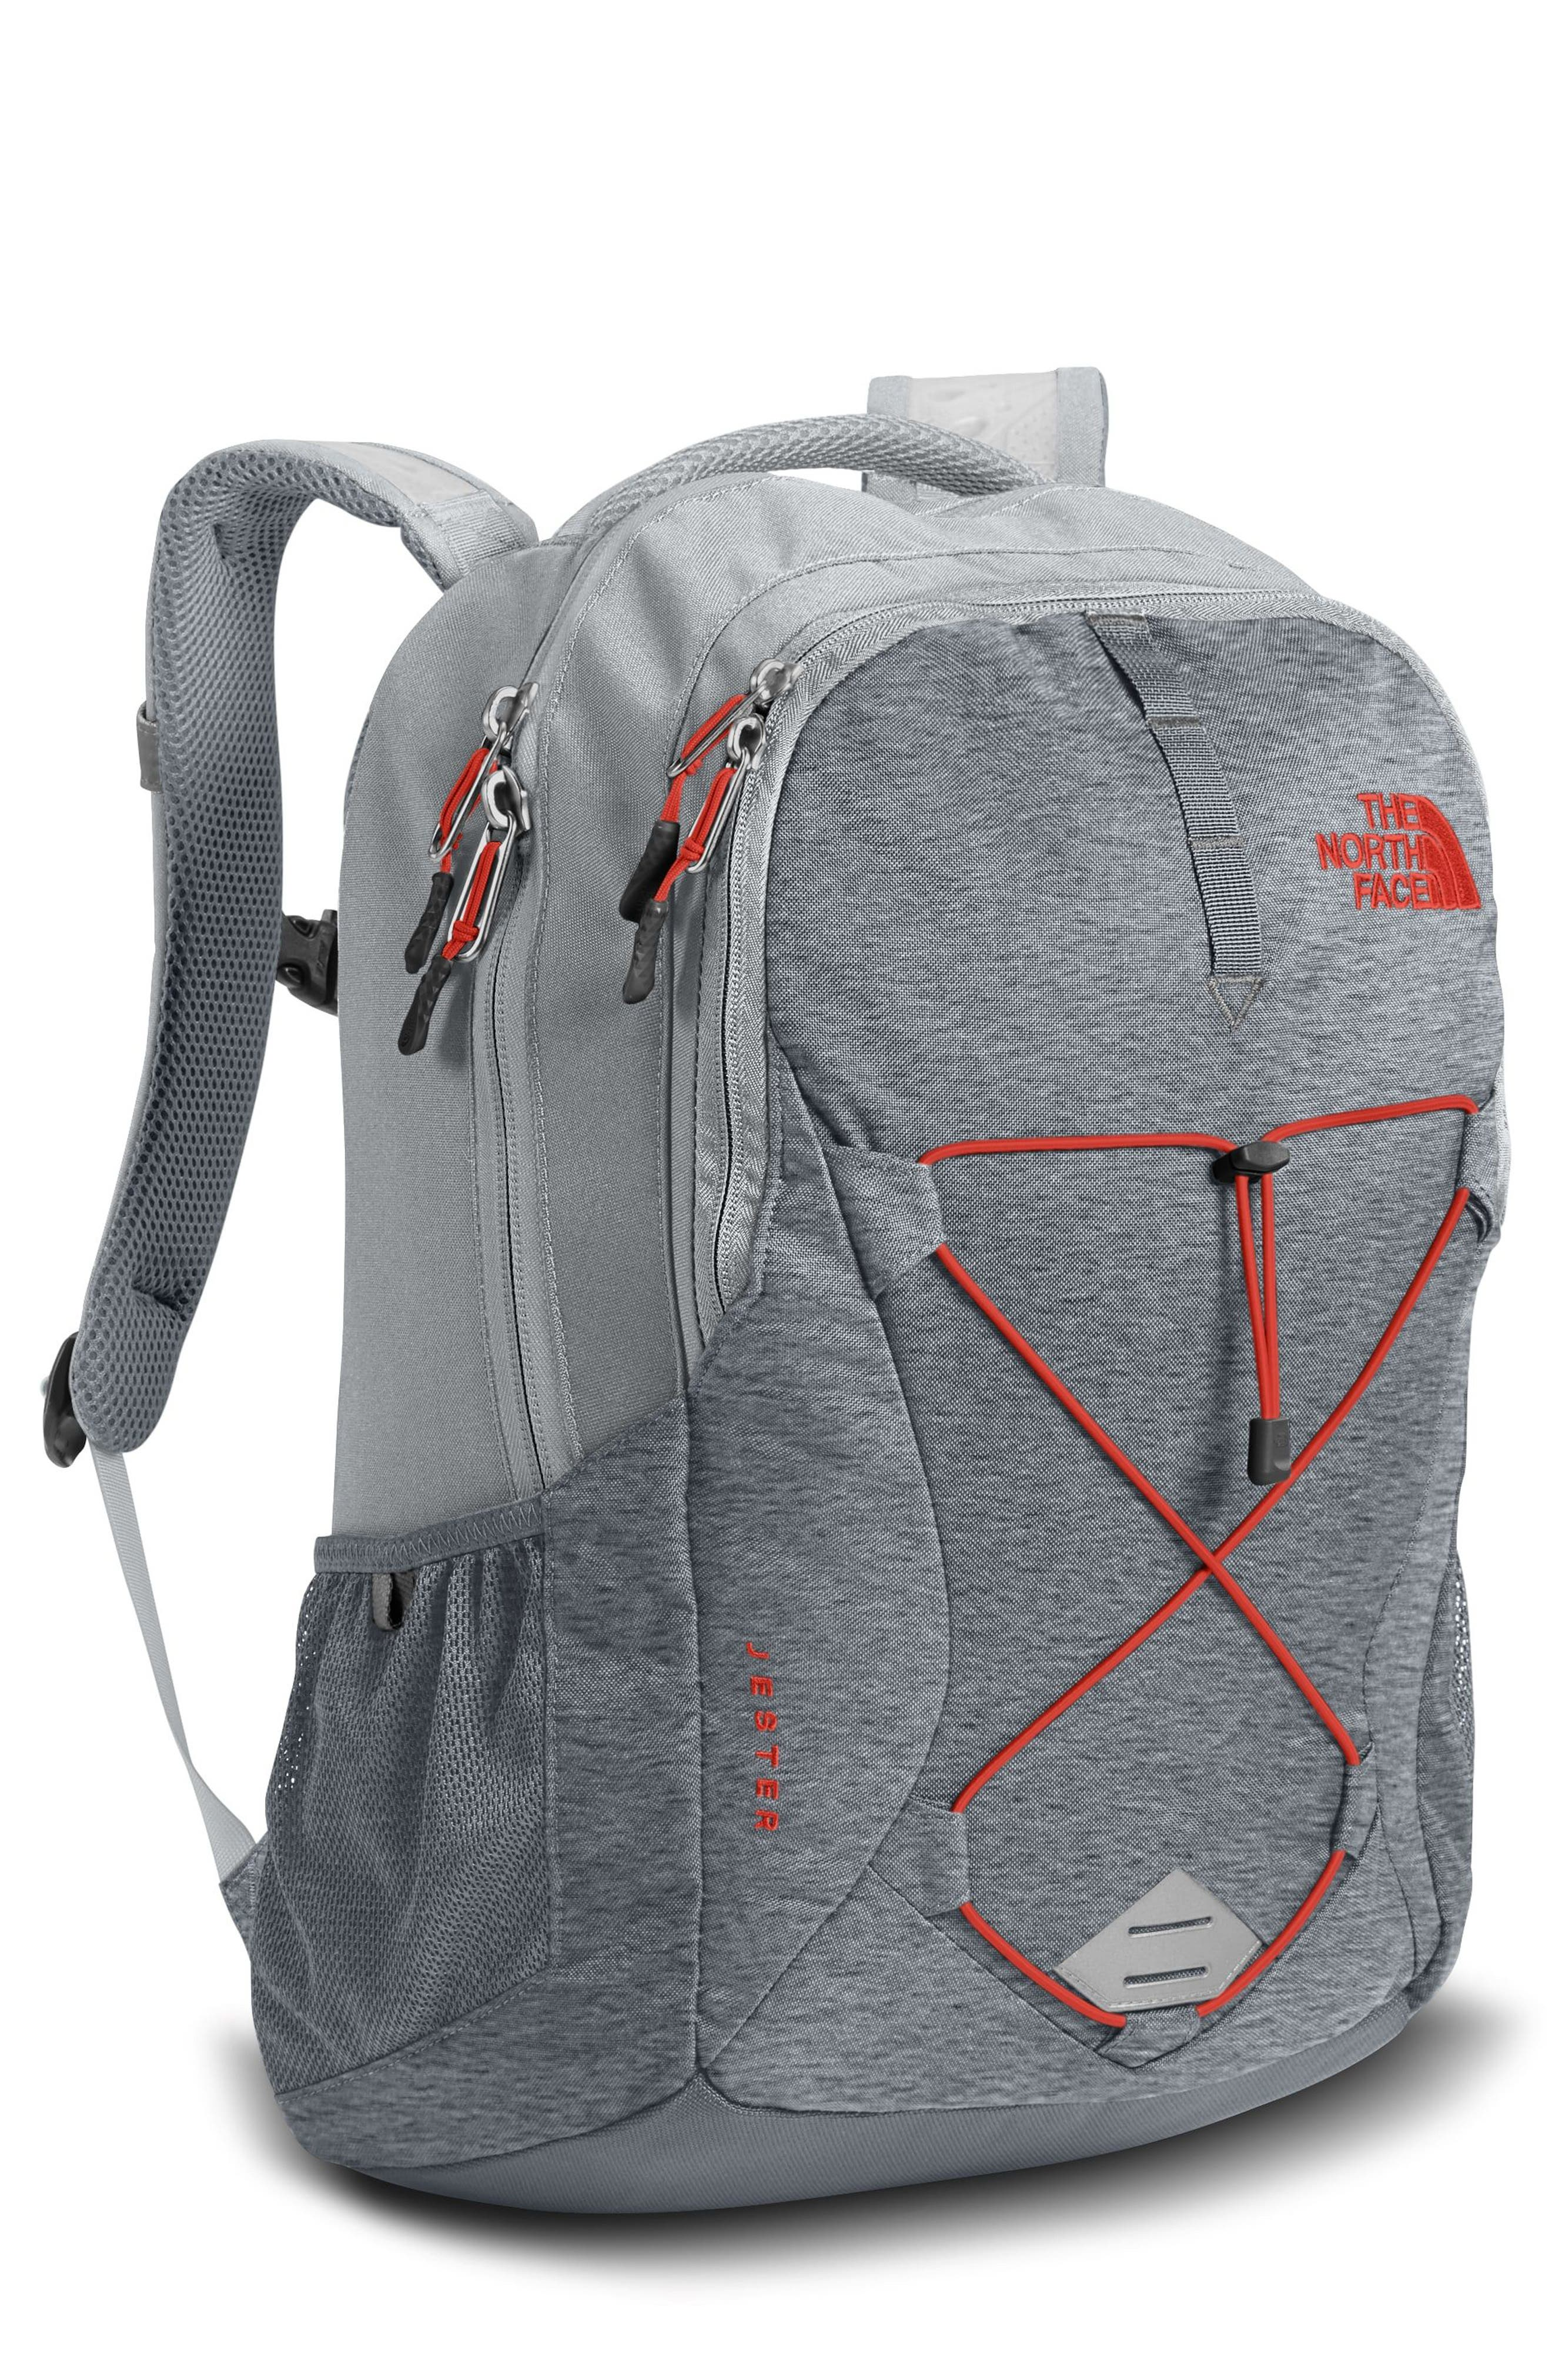 Jester Backpack,                         Main,                         color, GREY DARK HTHER/HIGH RISE GREY